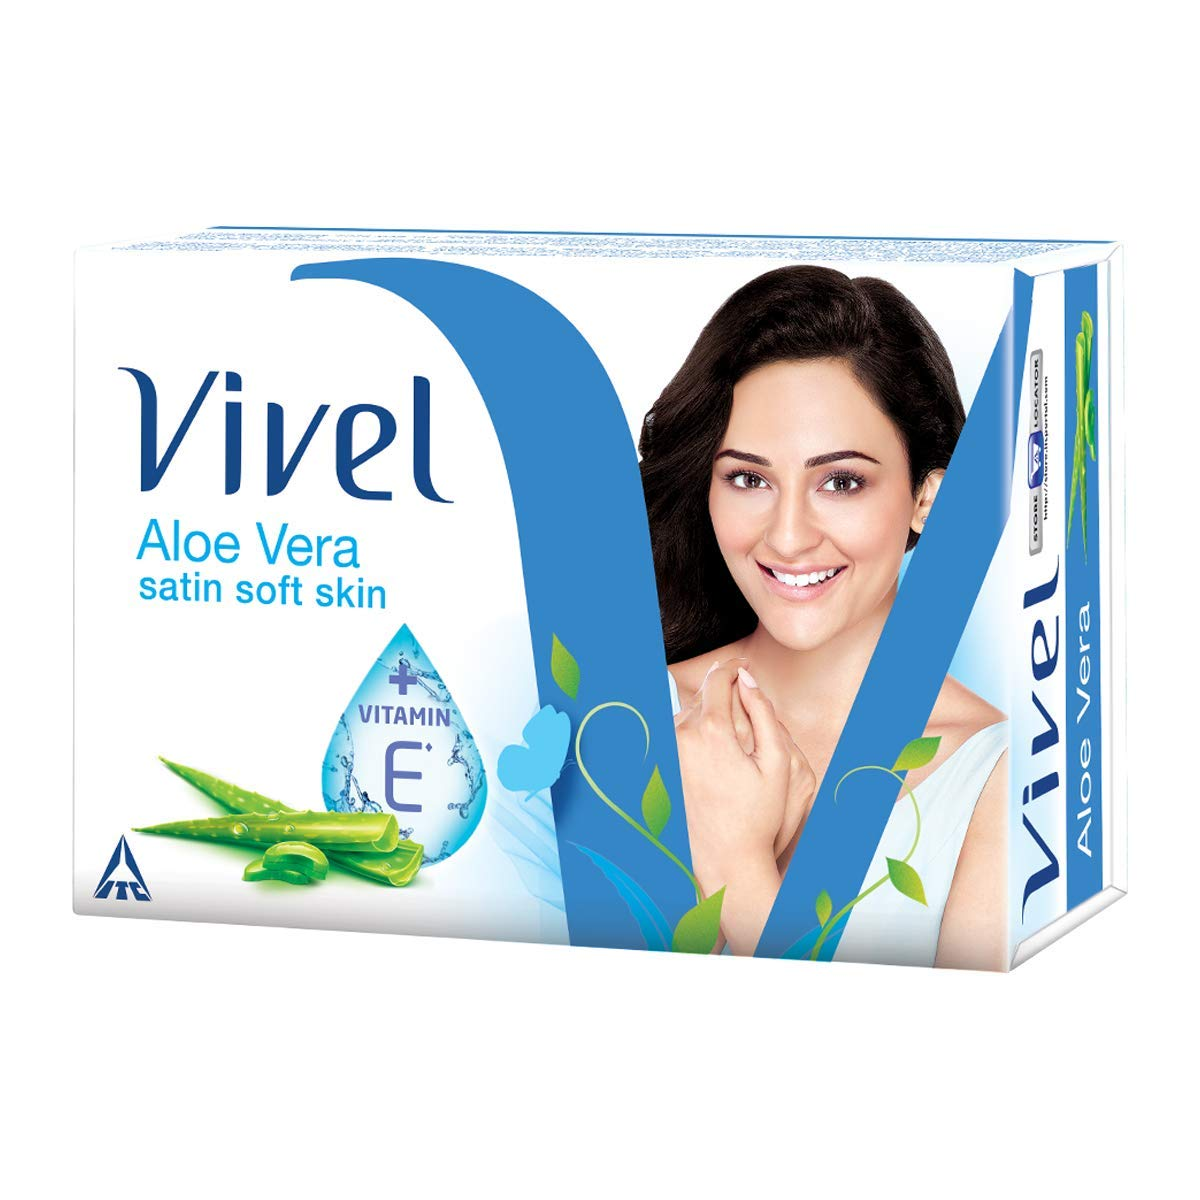 Vivel Aloe Vera, Body Soap